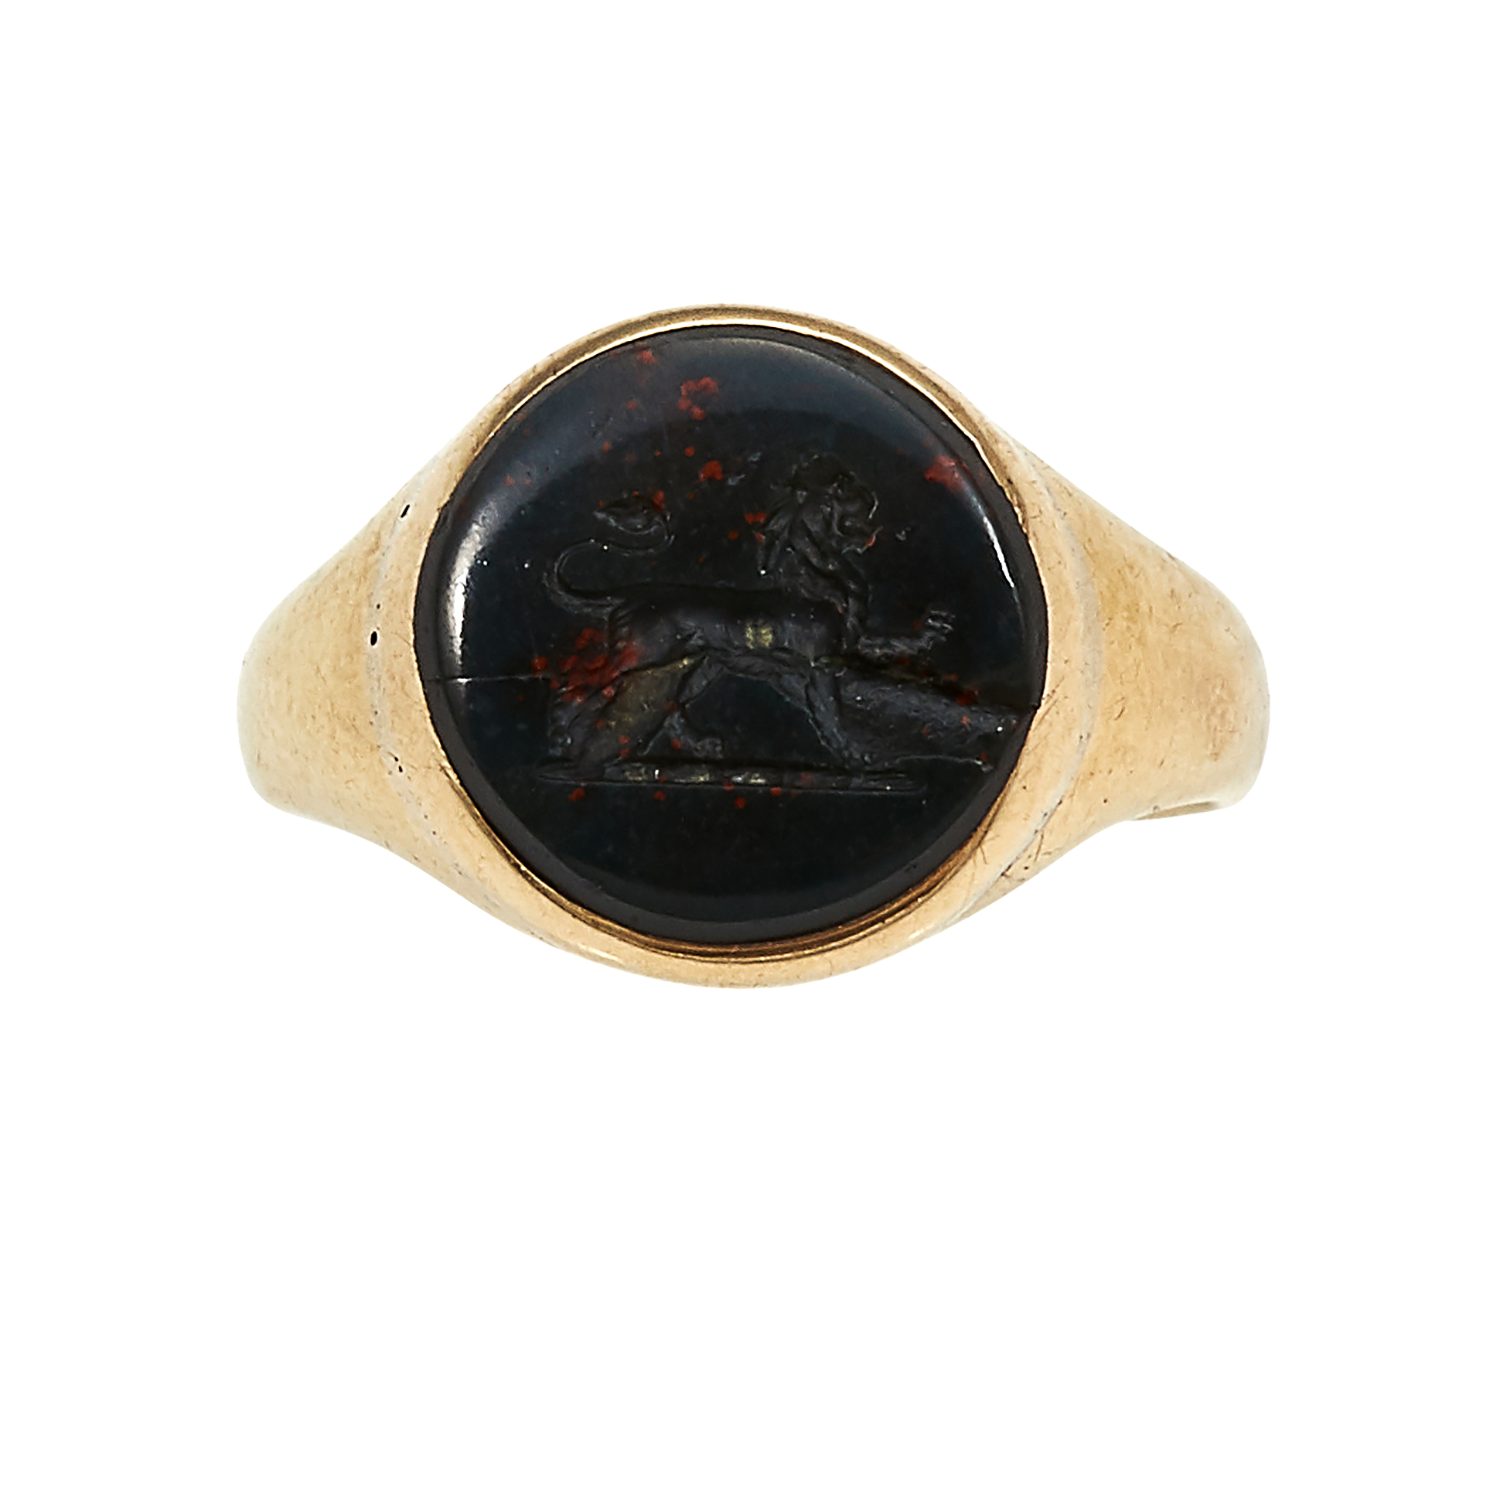 Los 13 - AN ANTIQUE BLOODSTONE INTAGLIO SIGNET RING in 18ct yellow gold, set with an oval piece of bloodstone